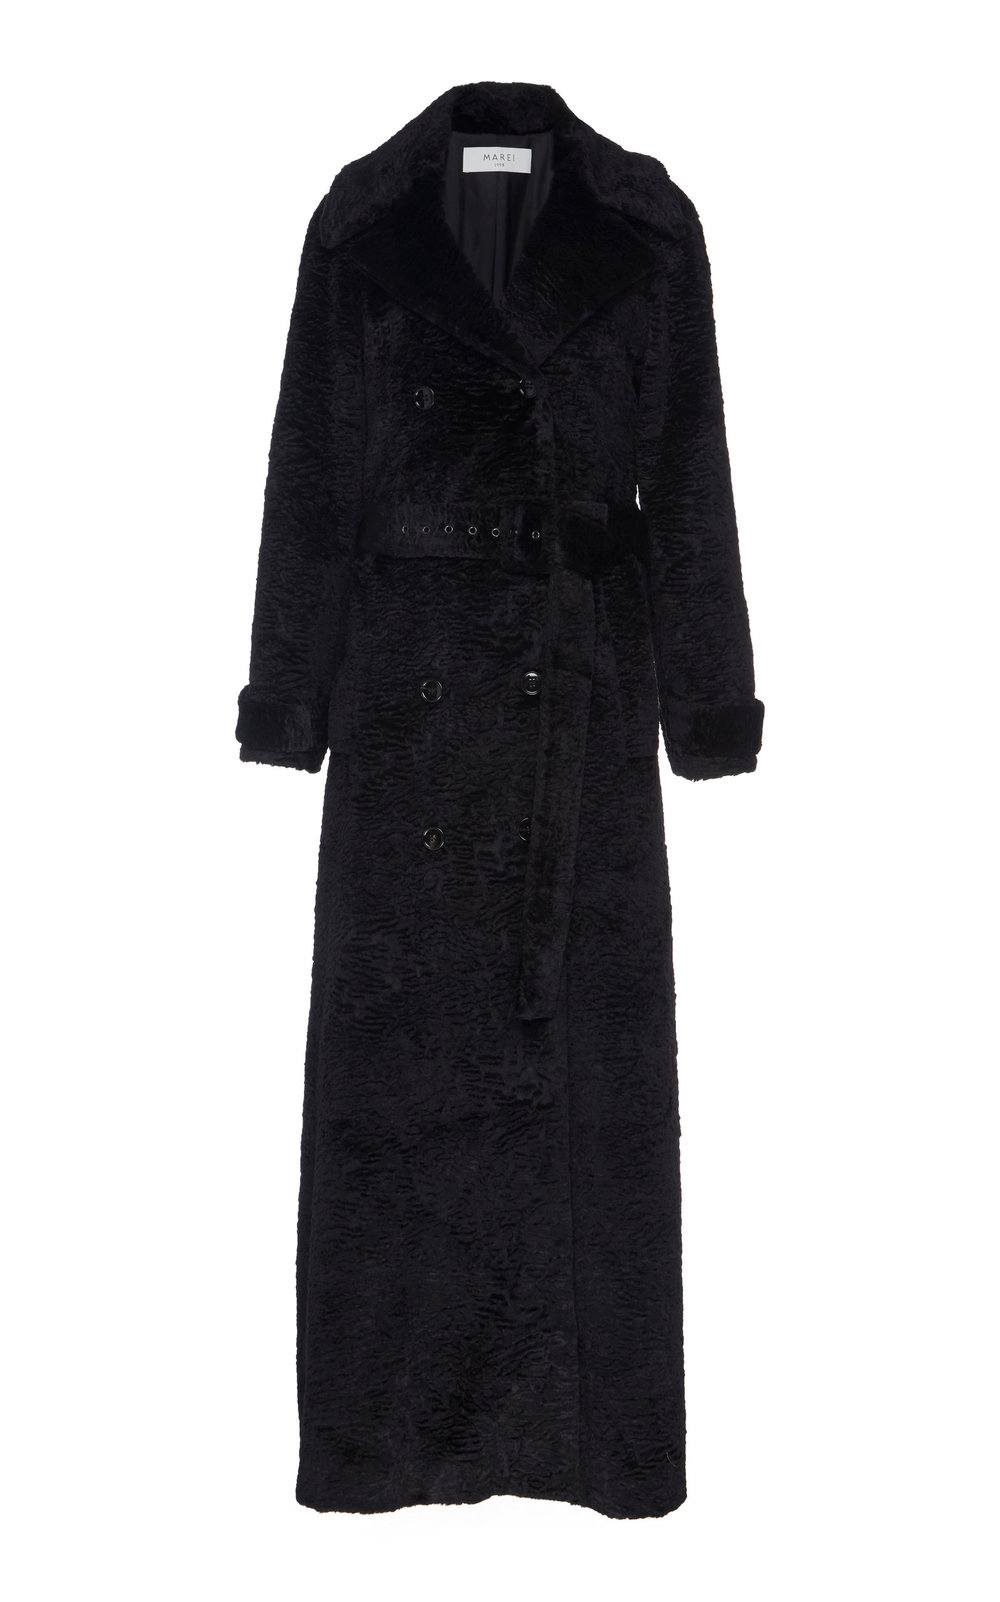 Muscari Textured Faux Fur Coat - BLACK  A timeless winter investment, this textured faux fur coat features a double-breasted design and notched lapels. Flared silhouette and ankle length add a dramatically elegant effect.  Wear yours with a matching belt to accentuate the waistline.